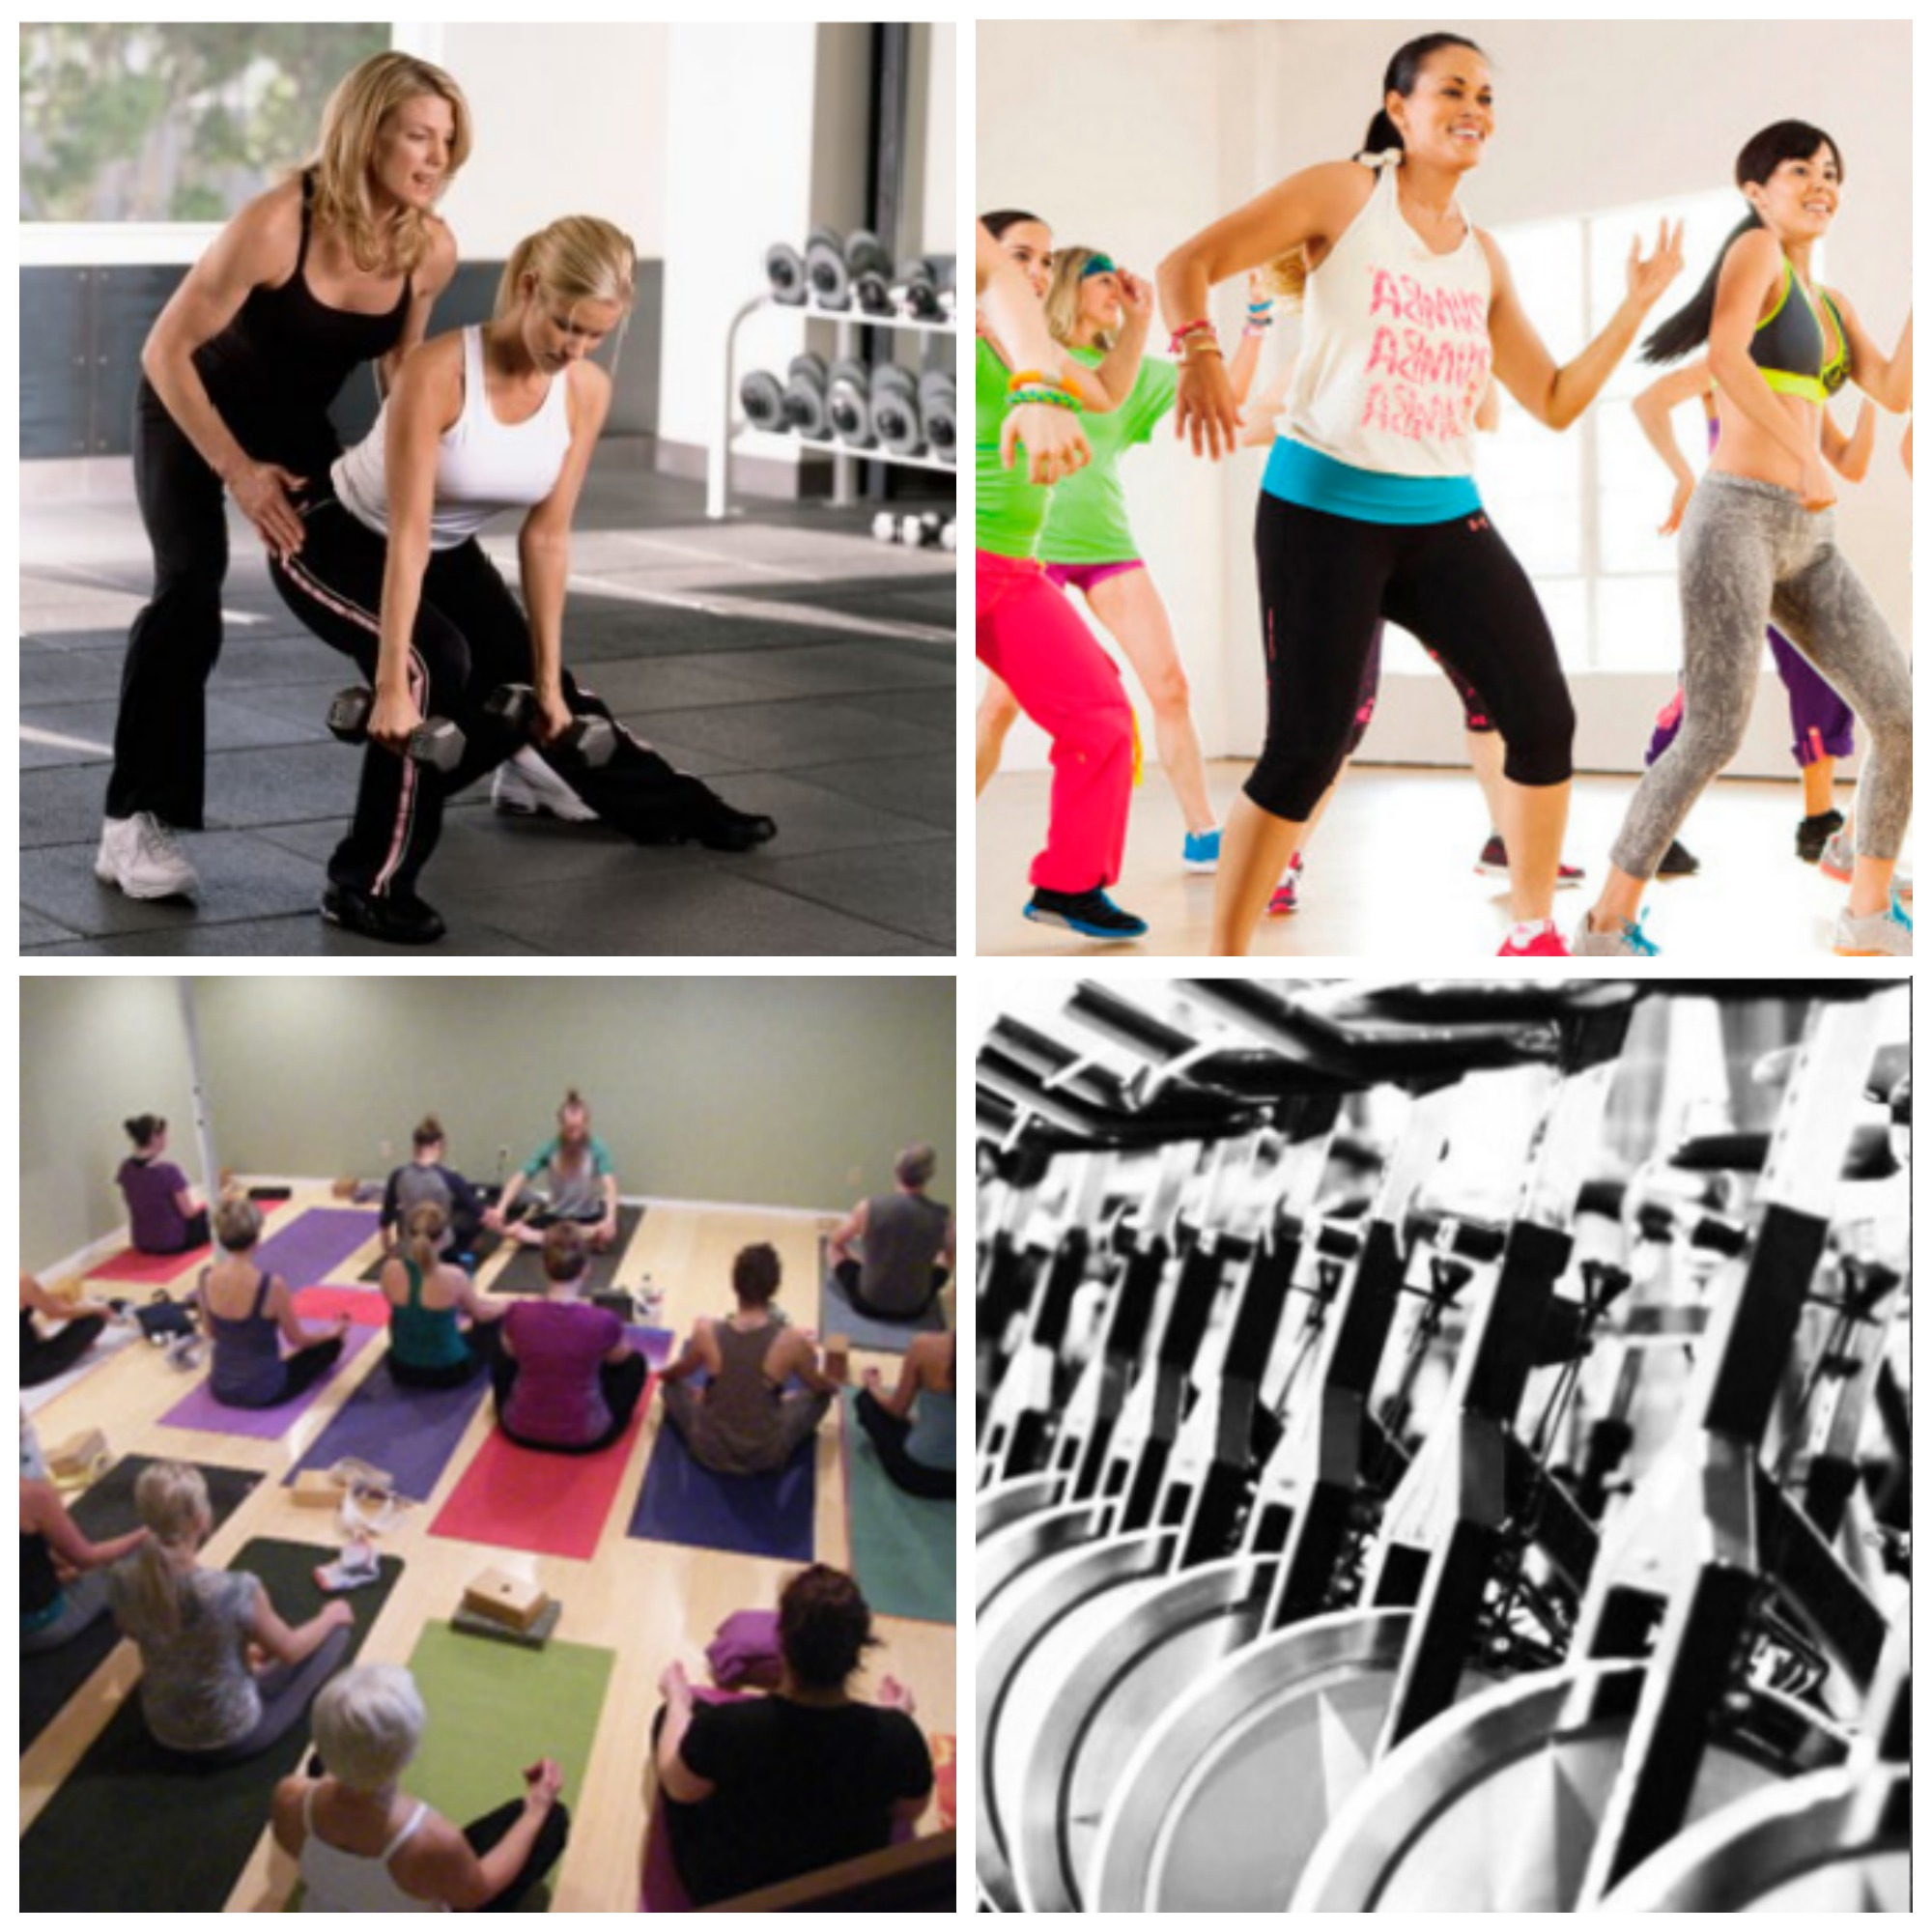 BLUSH FITNESS   New Women-Only Gym Coming to Johnson County